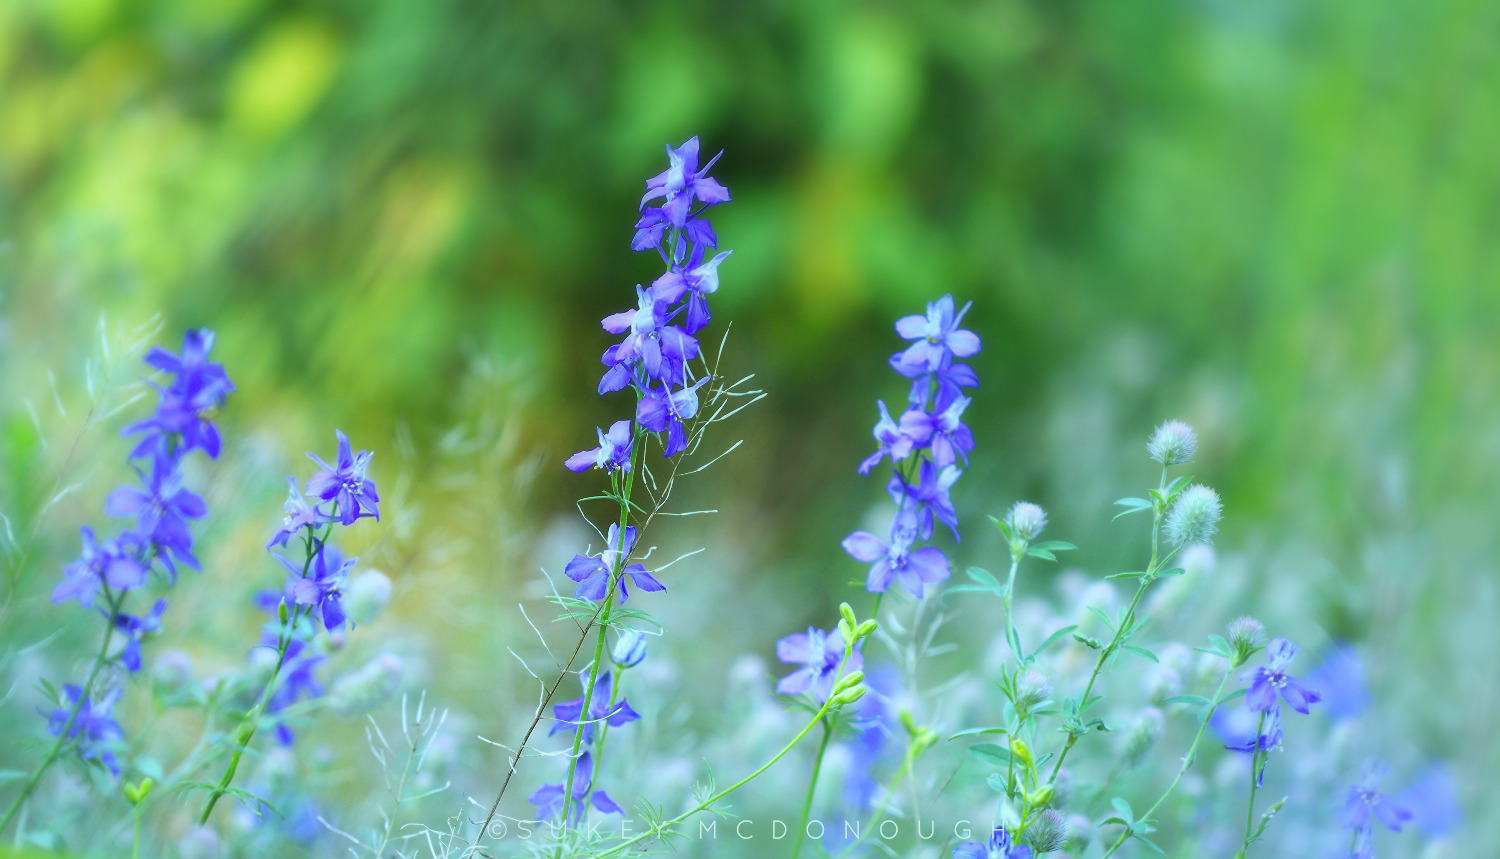 Larkspur and Rabbitfoot Clover